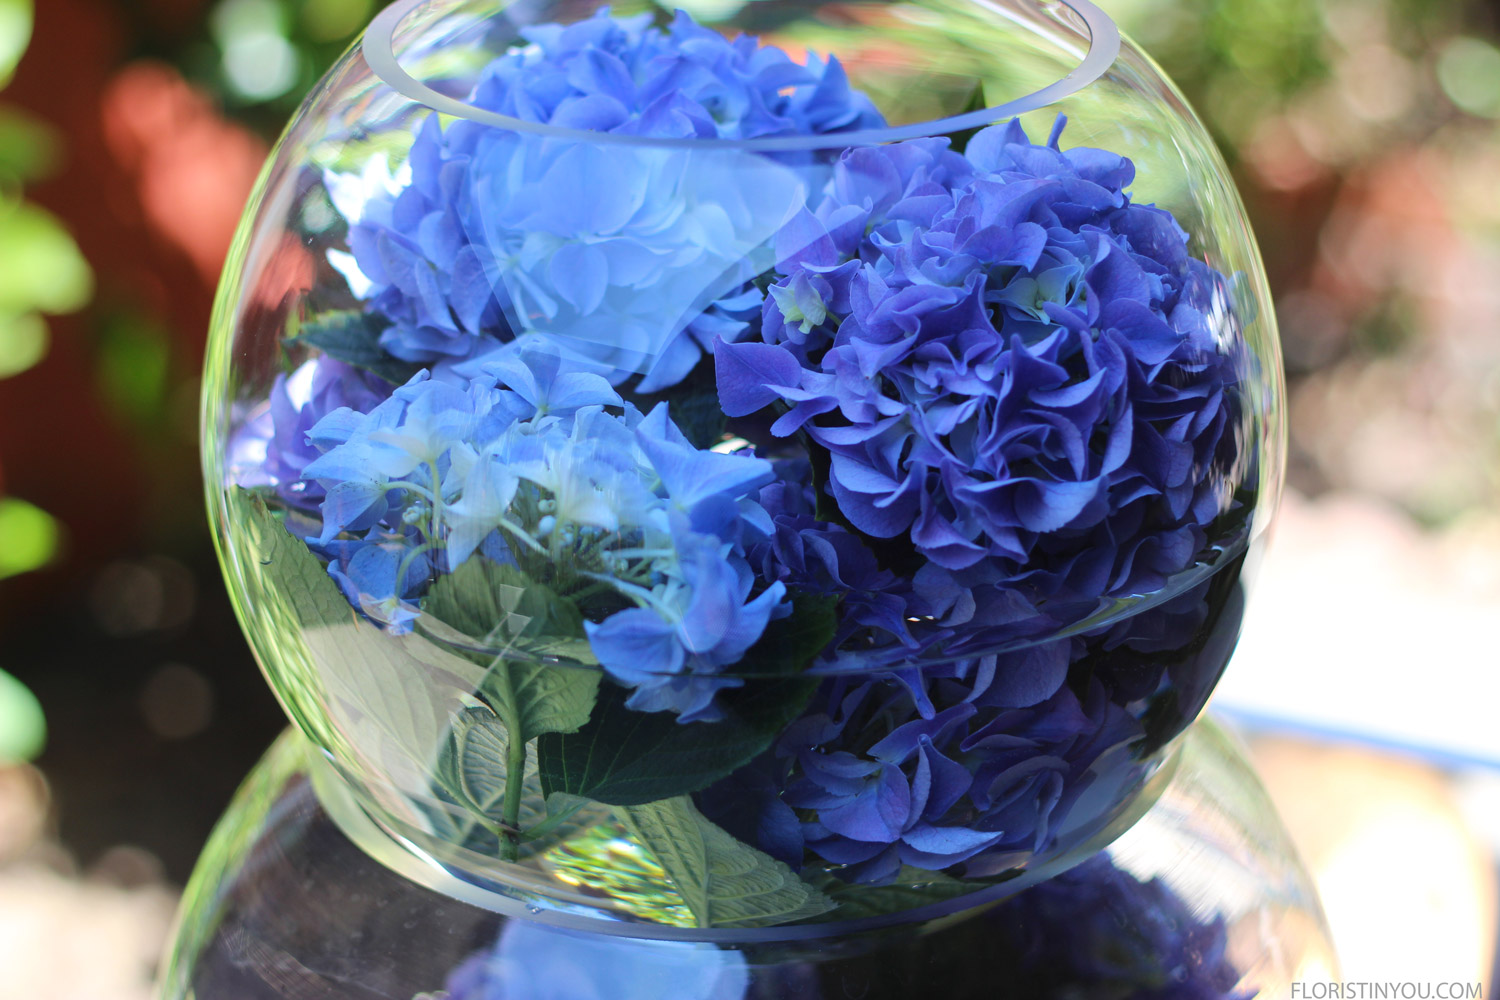 The hydrangeas look beautiful floating in the water.